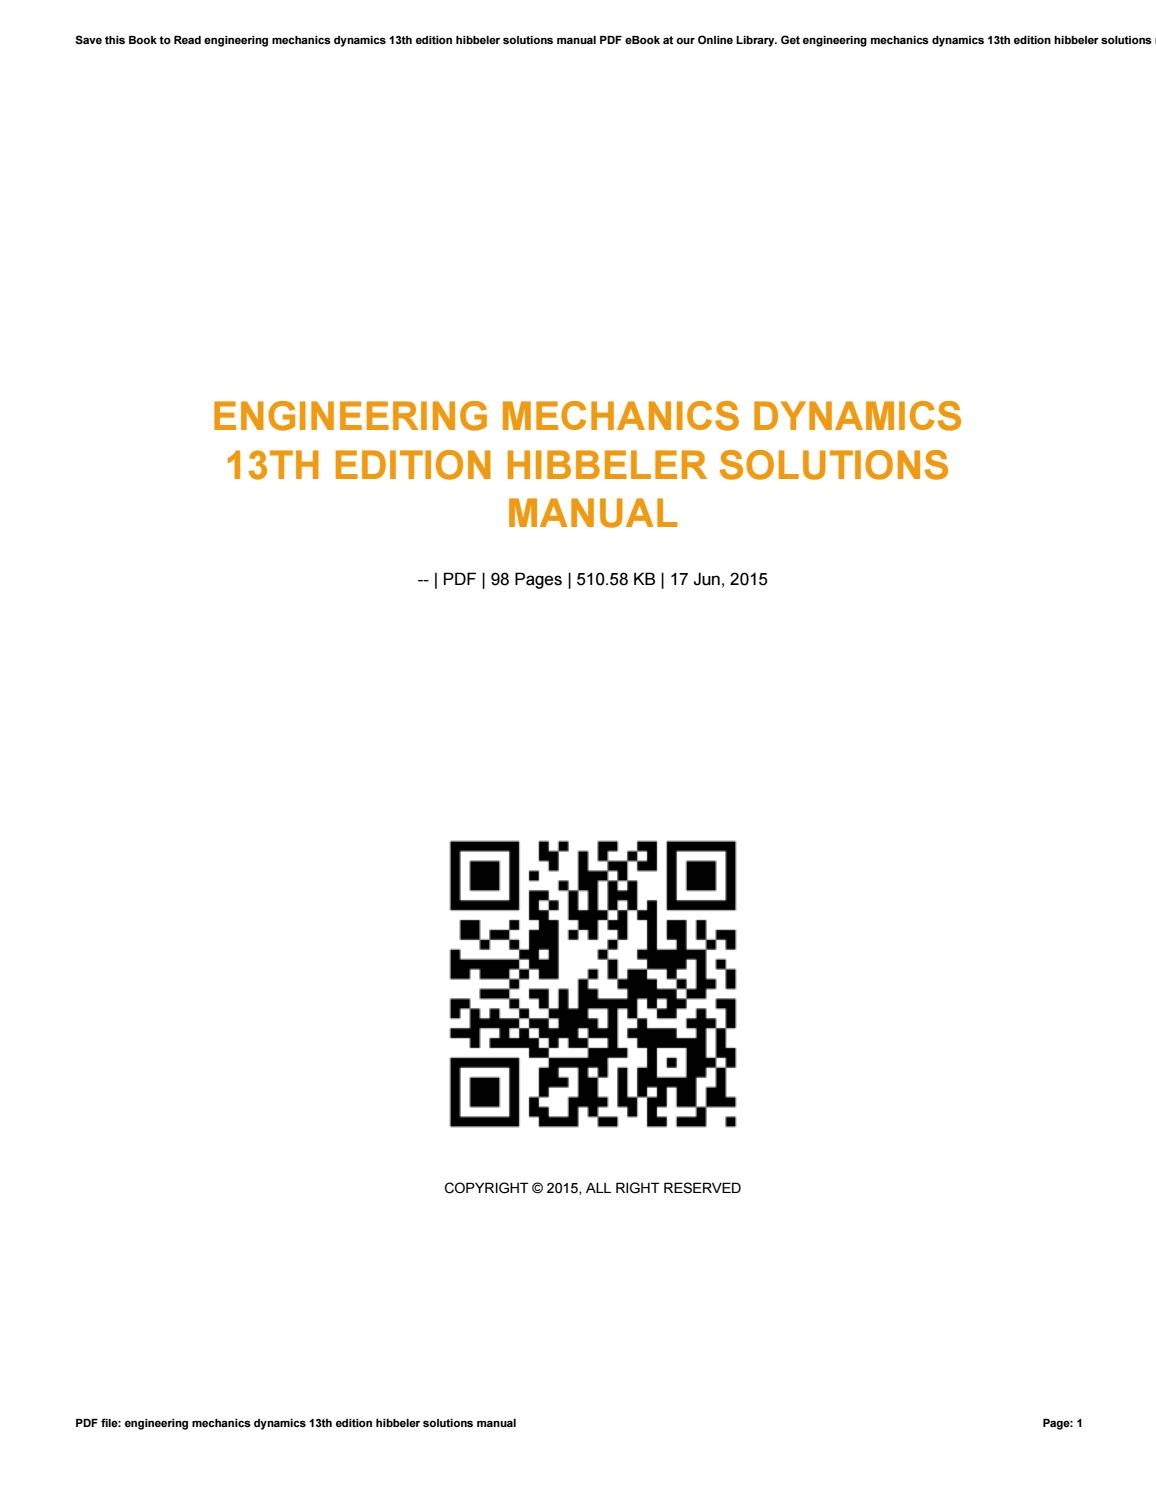 Engineering mechanics dynamics 13th edition hibbeler solutions manual by  vssms147 - issuu